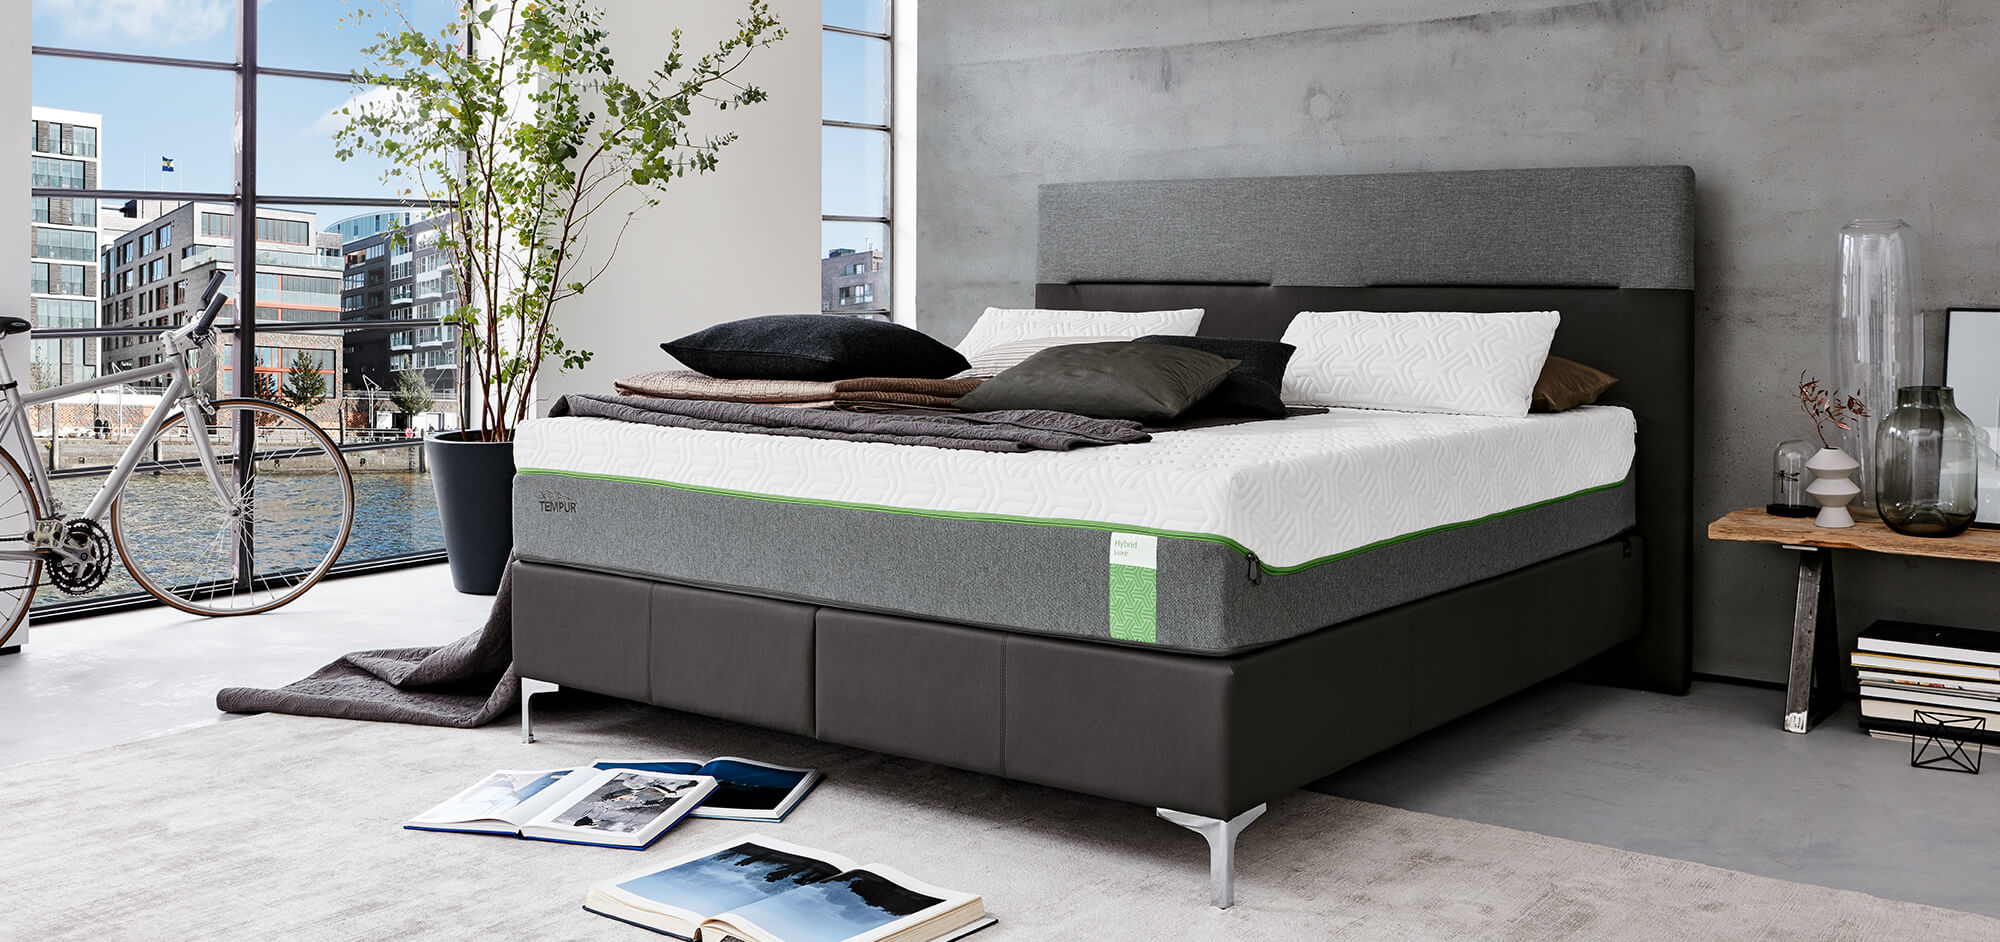 tempur boxspring th nig ag bettenhaus st gallen. Black Bedroom Furniture Sets. Home Design Ideas